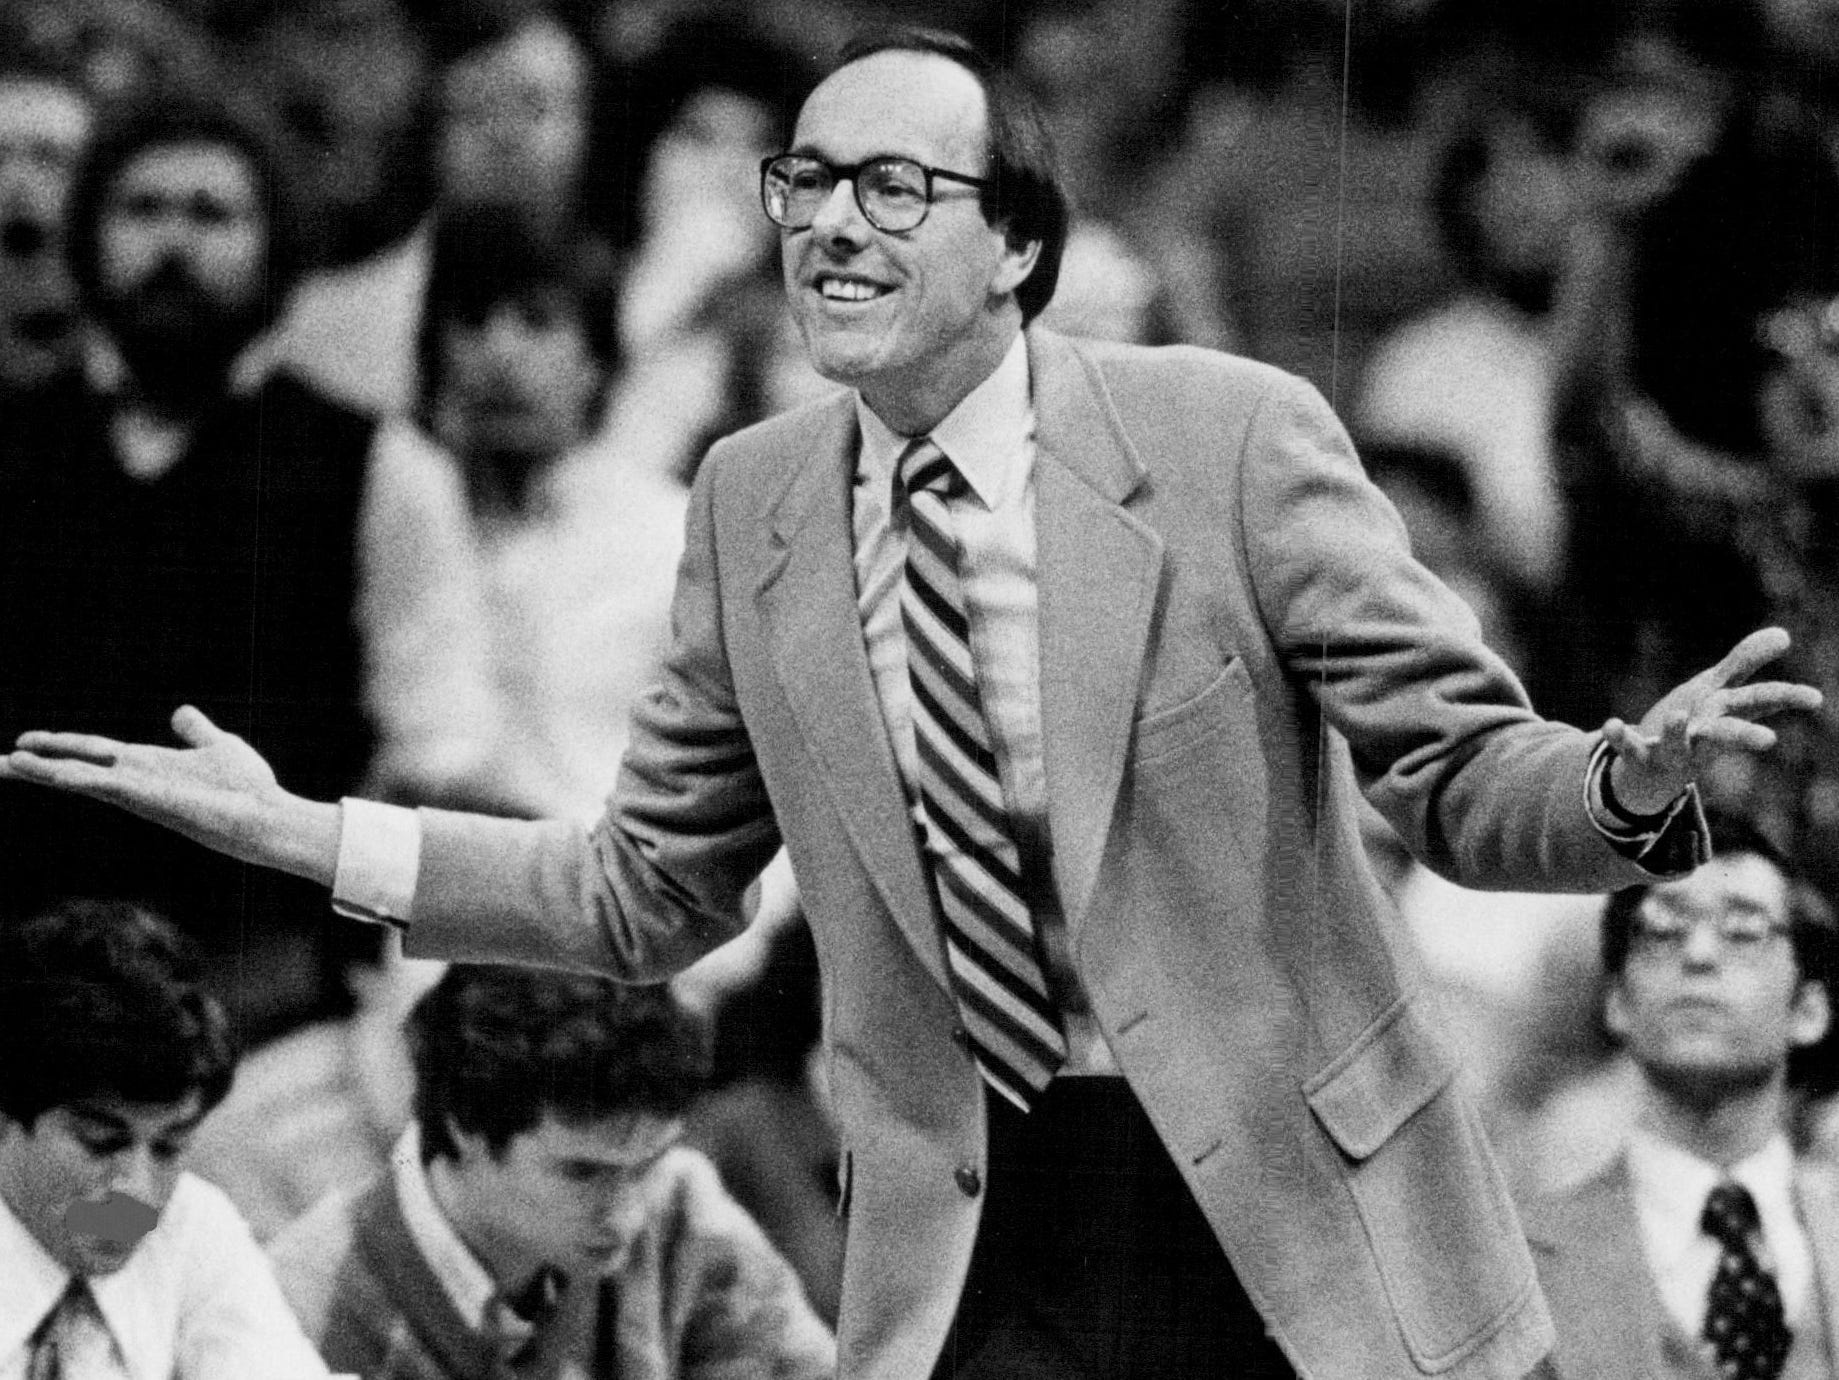 Syracuse coach Jim Boeheim pleads his case to the officials during a 72-69 win over Connecticut on Jan. 6, 1982.